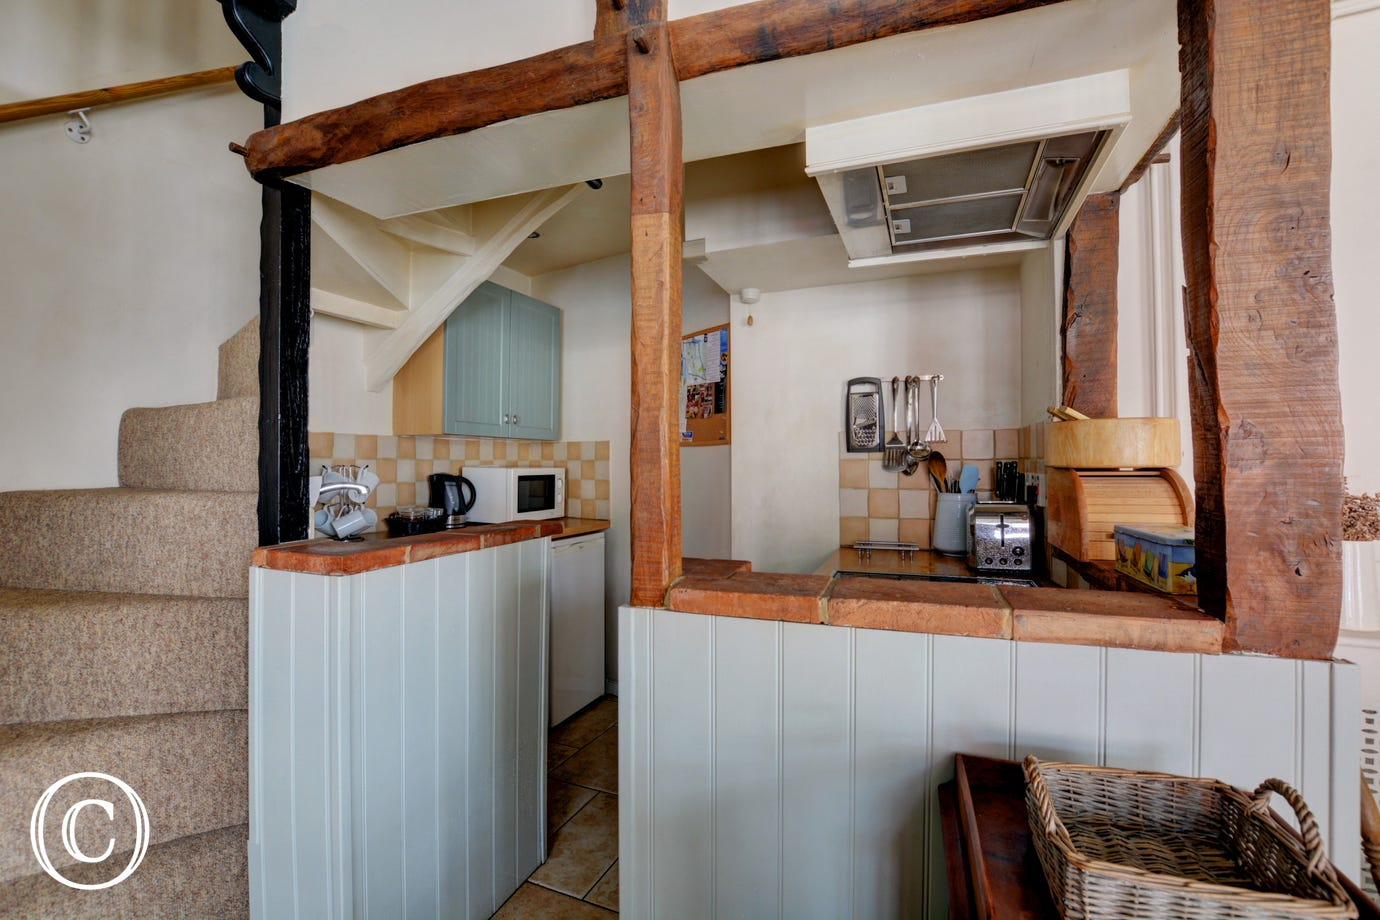 Compact kitchen with appliances situated at the bottom of the cottage style stairs.